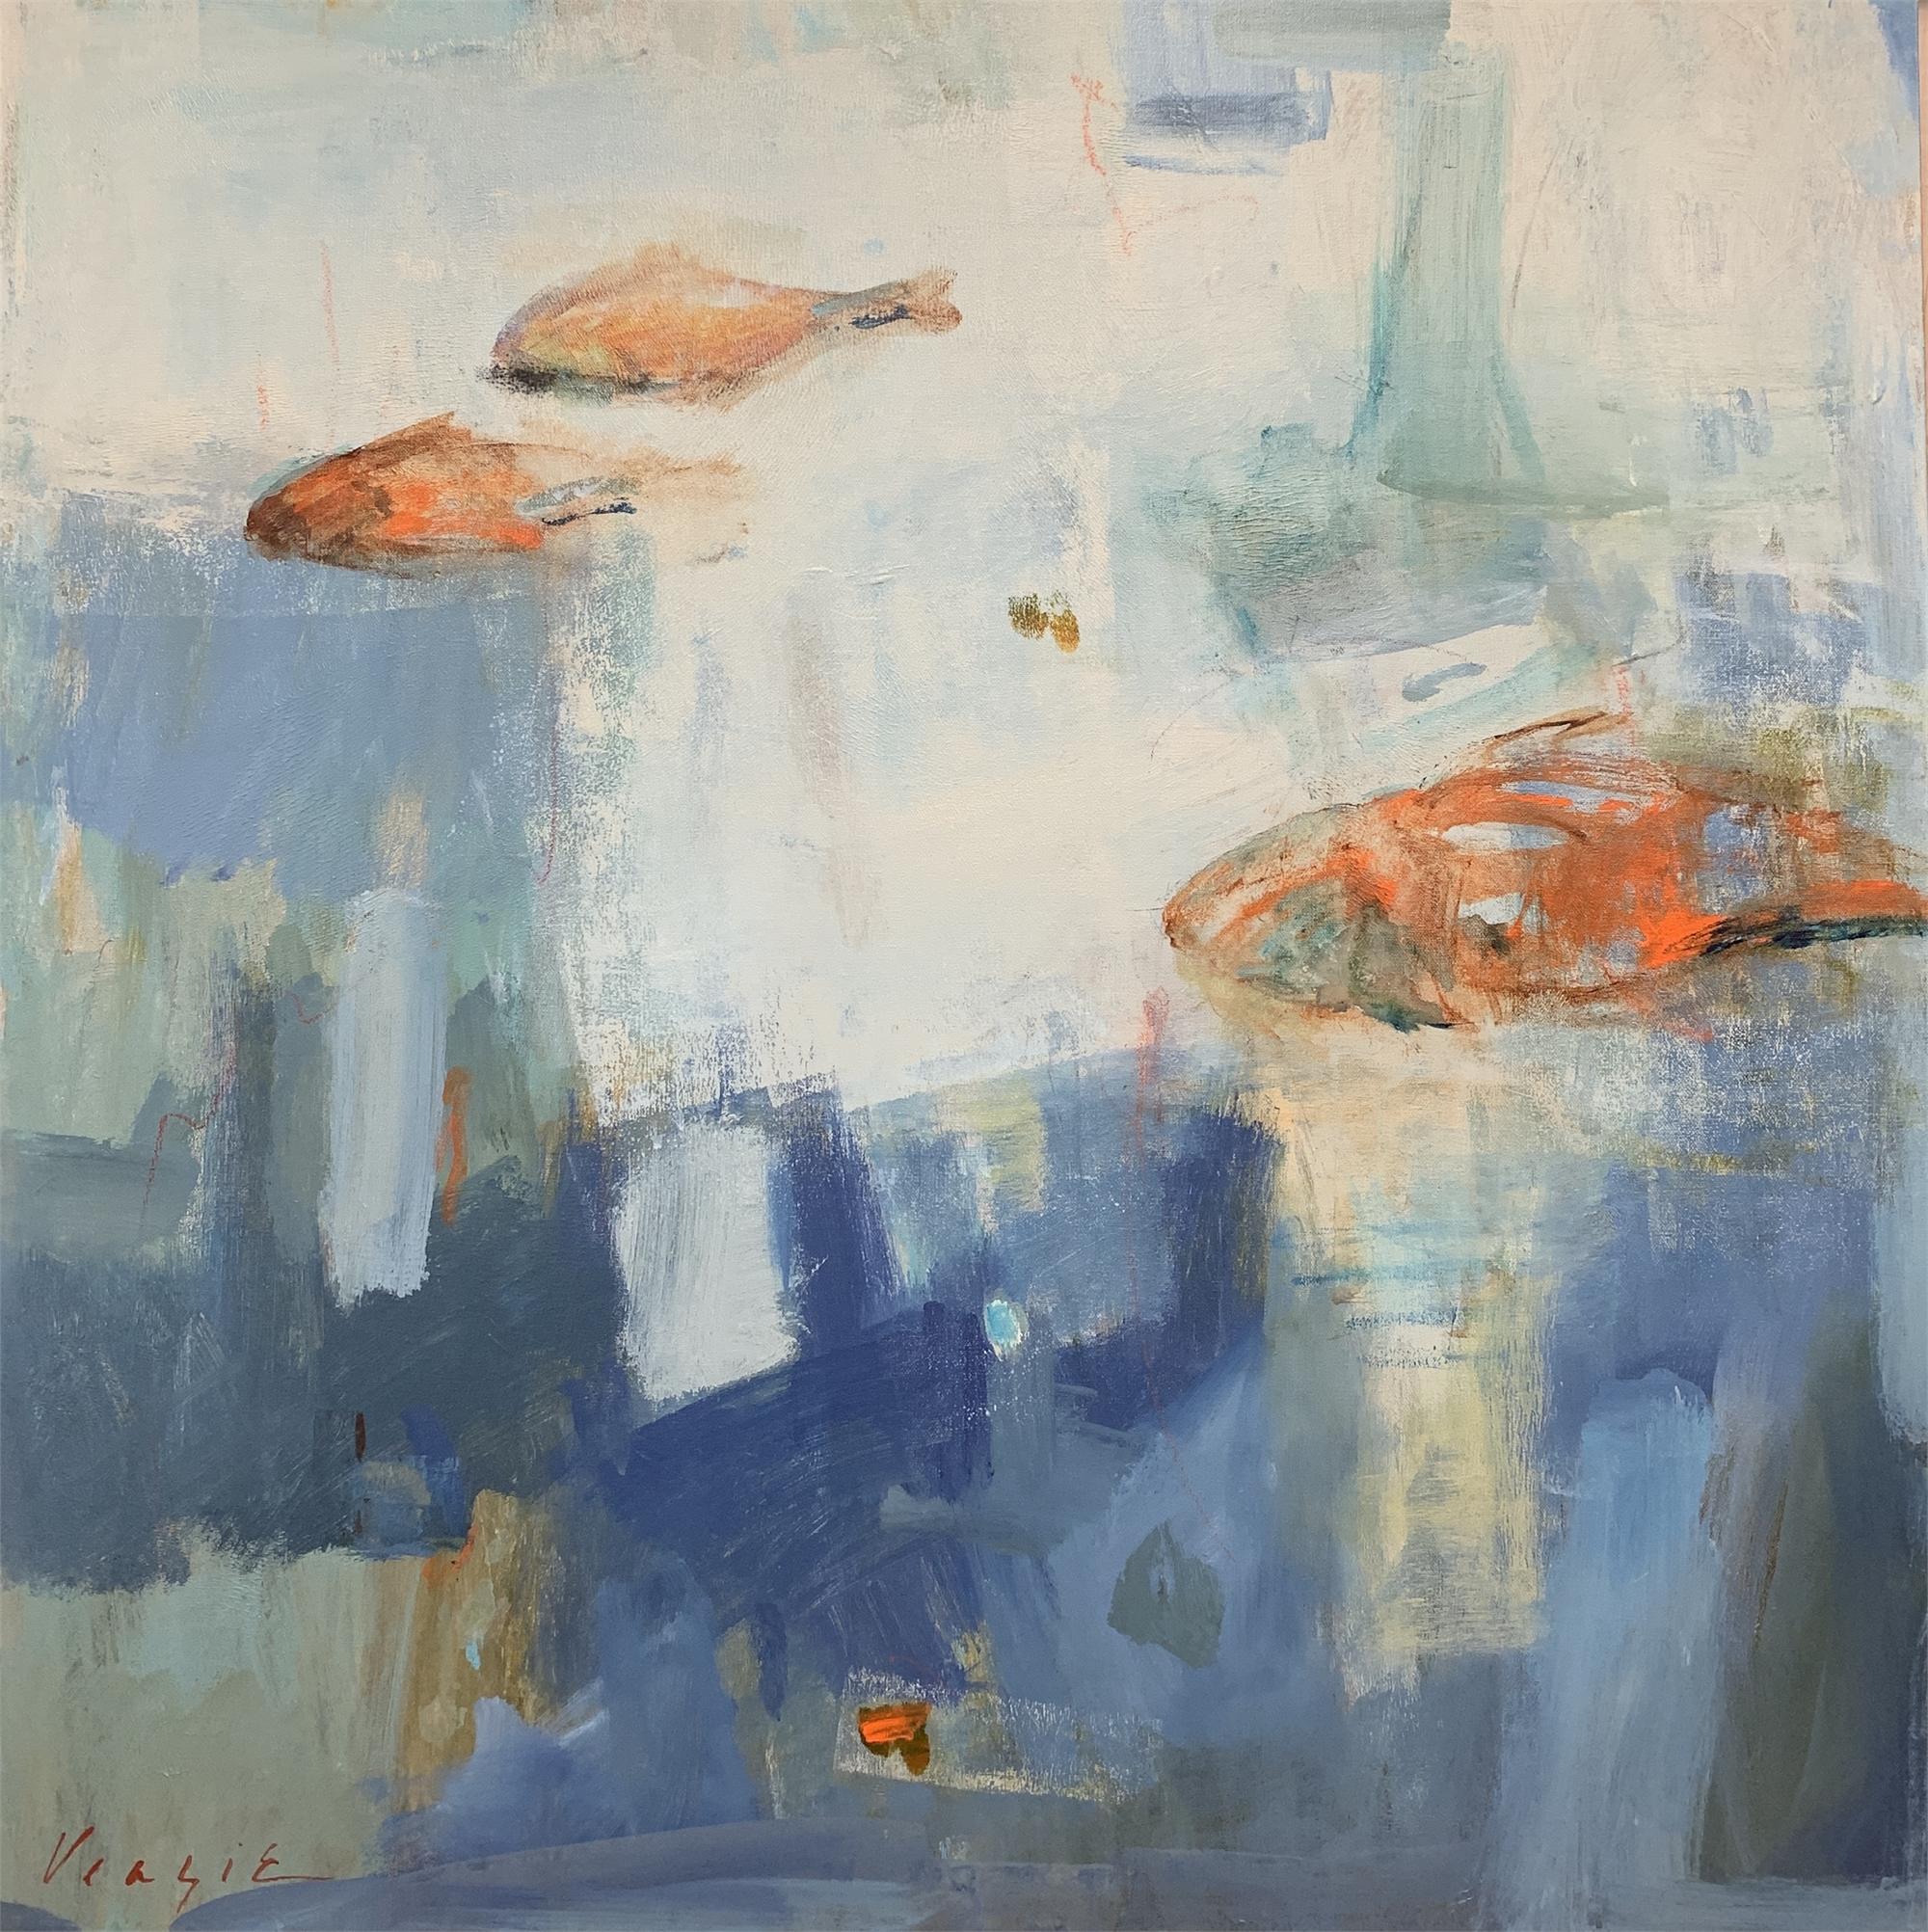 Deep Blue by Mary Miller Veazie